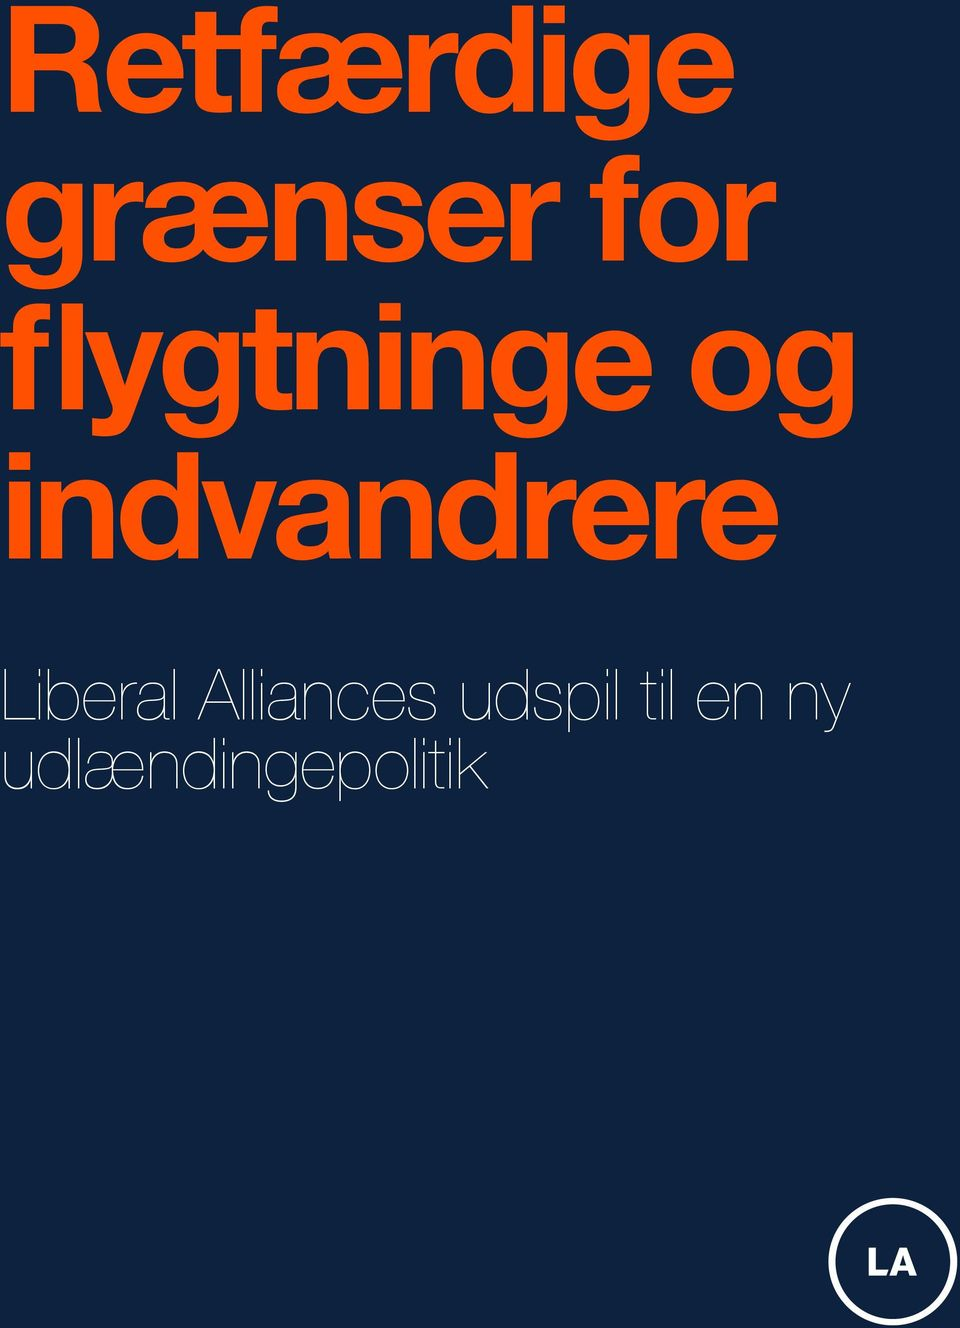 Liberal Alliances udspil